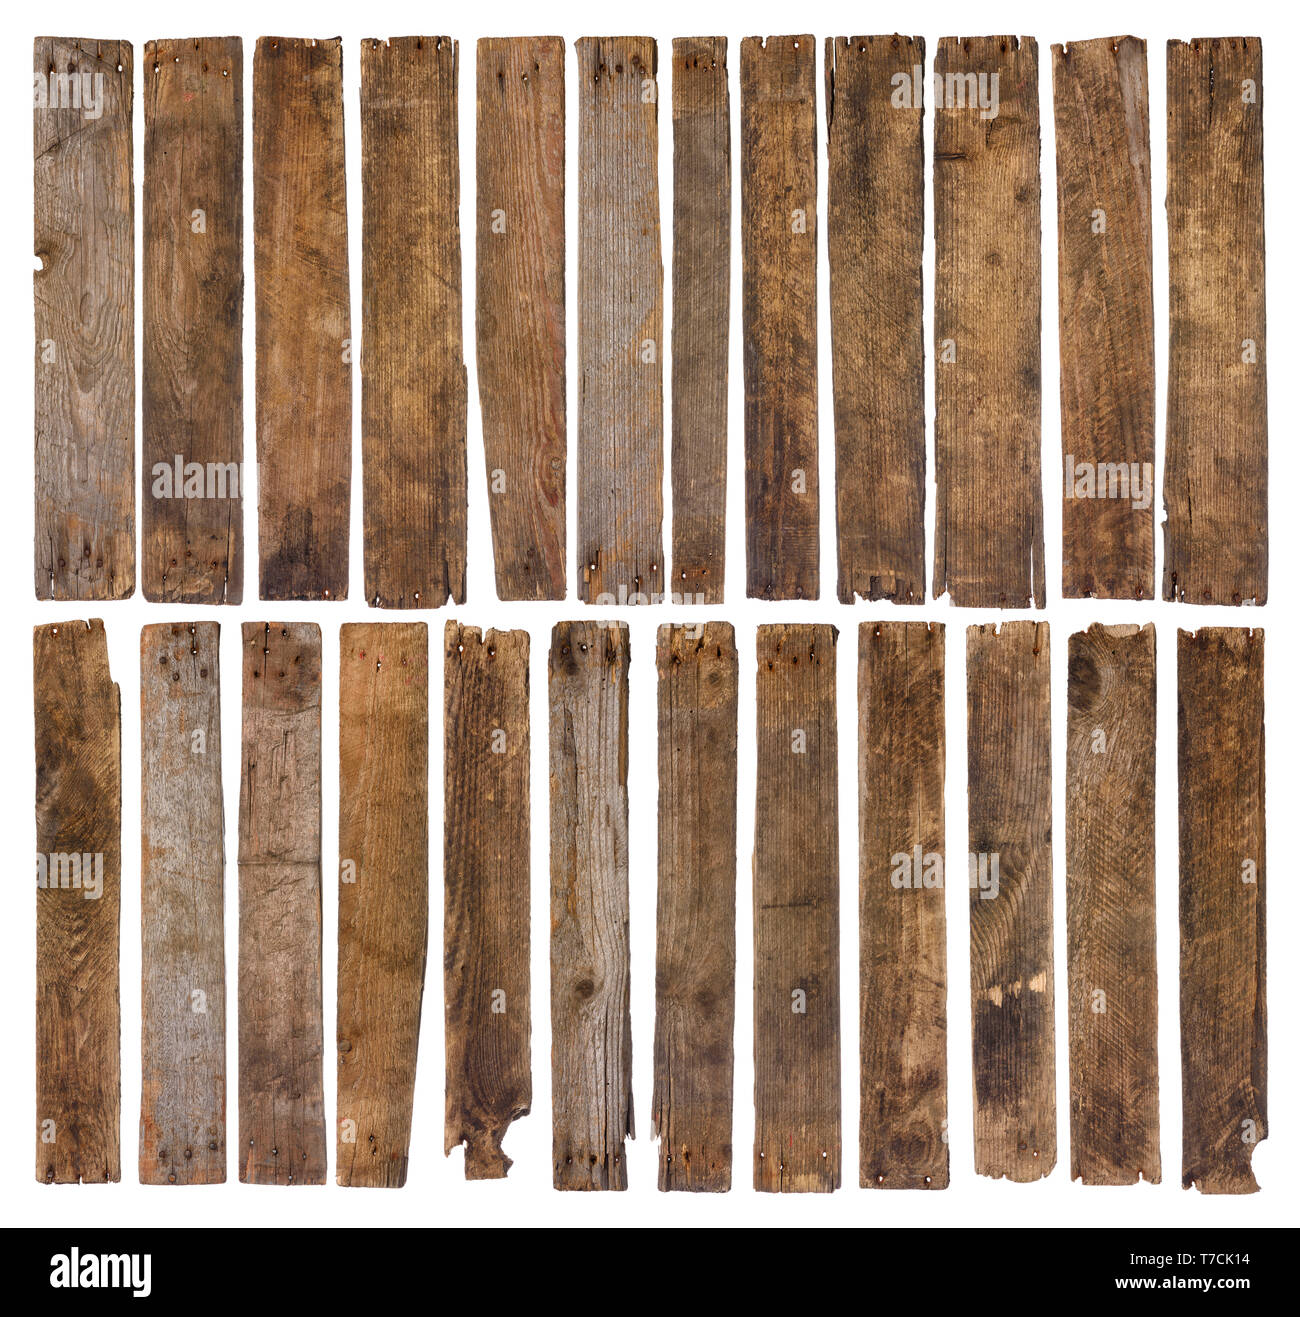 Old wooden planks isolated on white background. Set of 24 unique short rustic weathered wood plank, sharp and highly detailed for design. - Stock Image